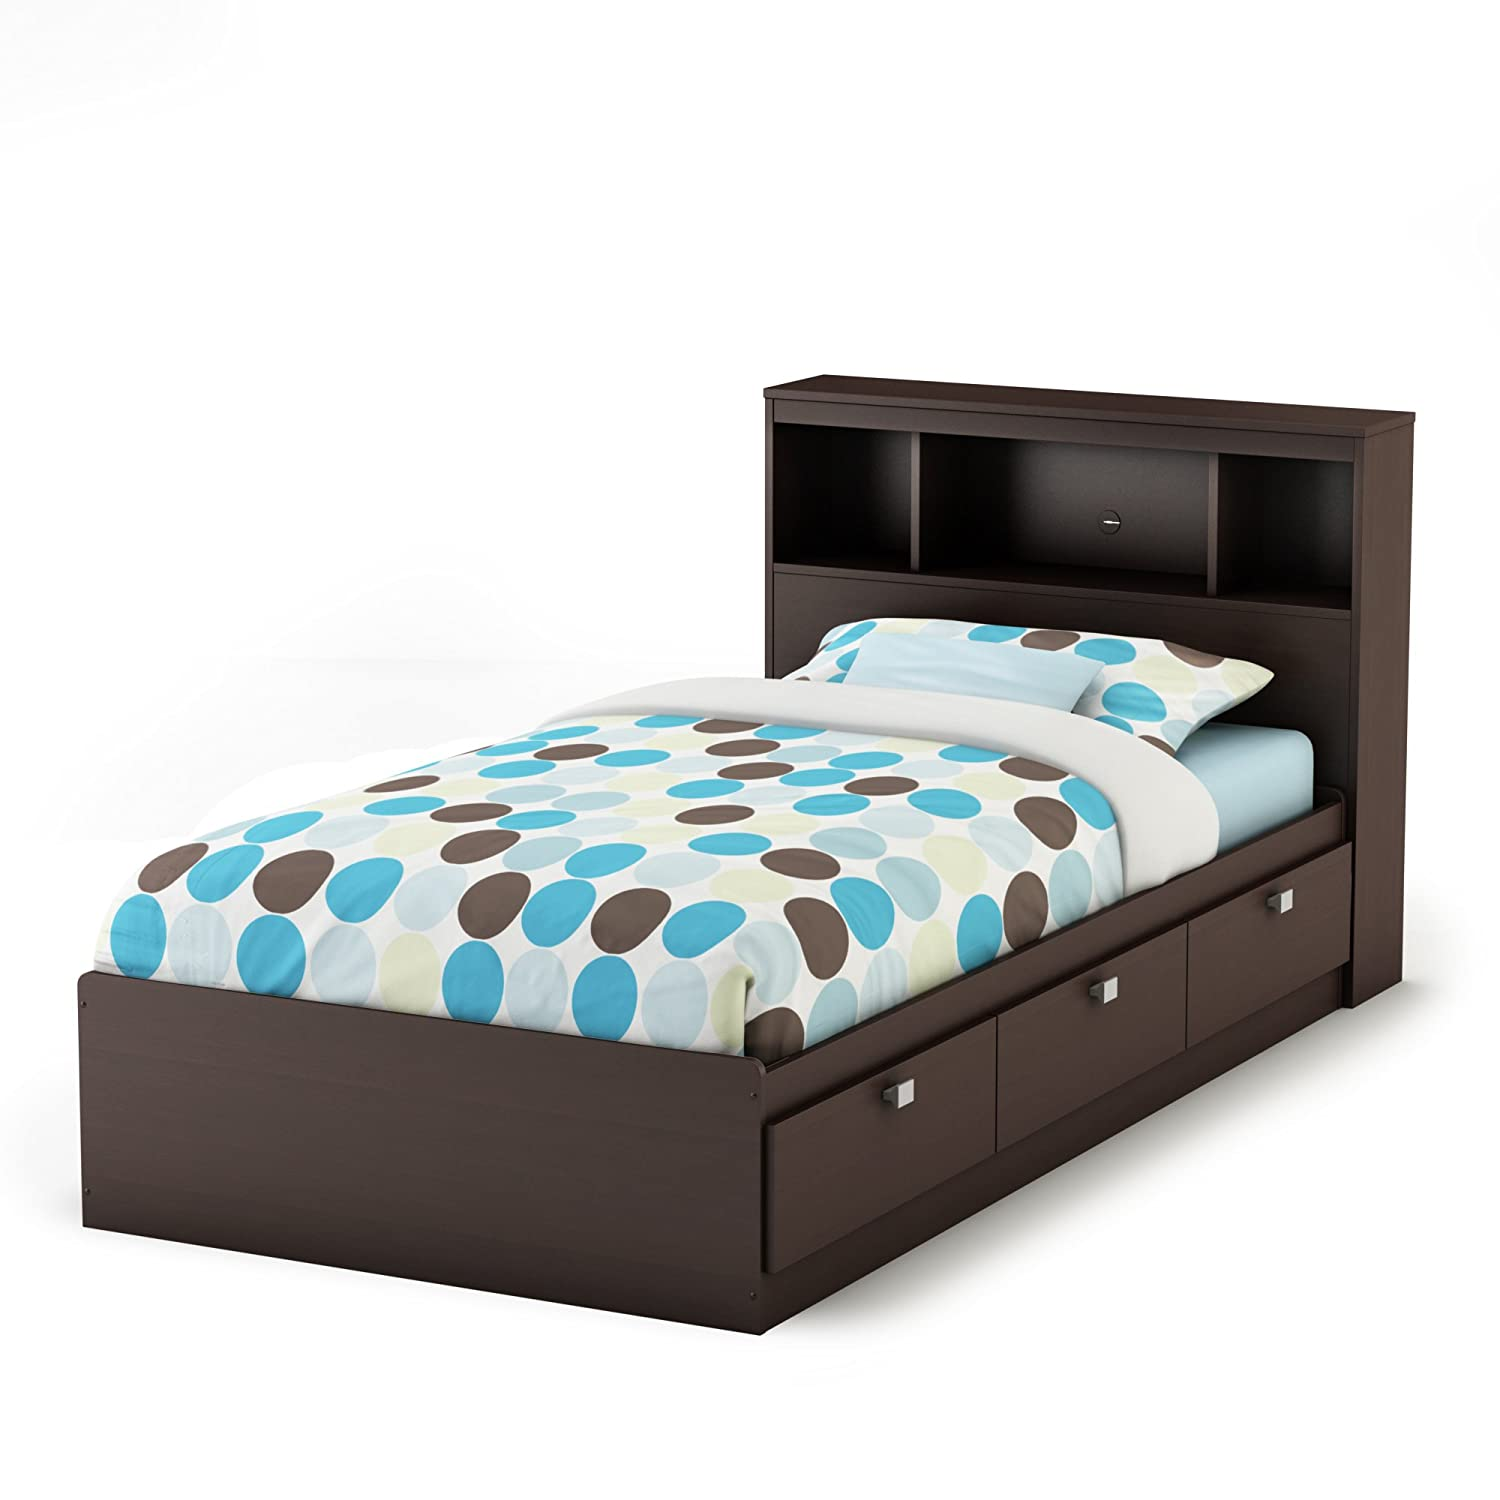 Amazon com  South Shore Furniture  Cakao Collection  Twin Mates Bed 39    Chocolate  Kitchen   Dining. Amazon com  South Shore Furniture  Cakao Collection  Twin Mates